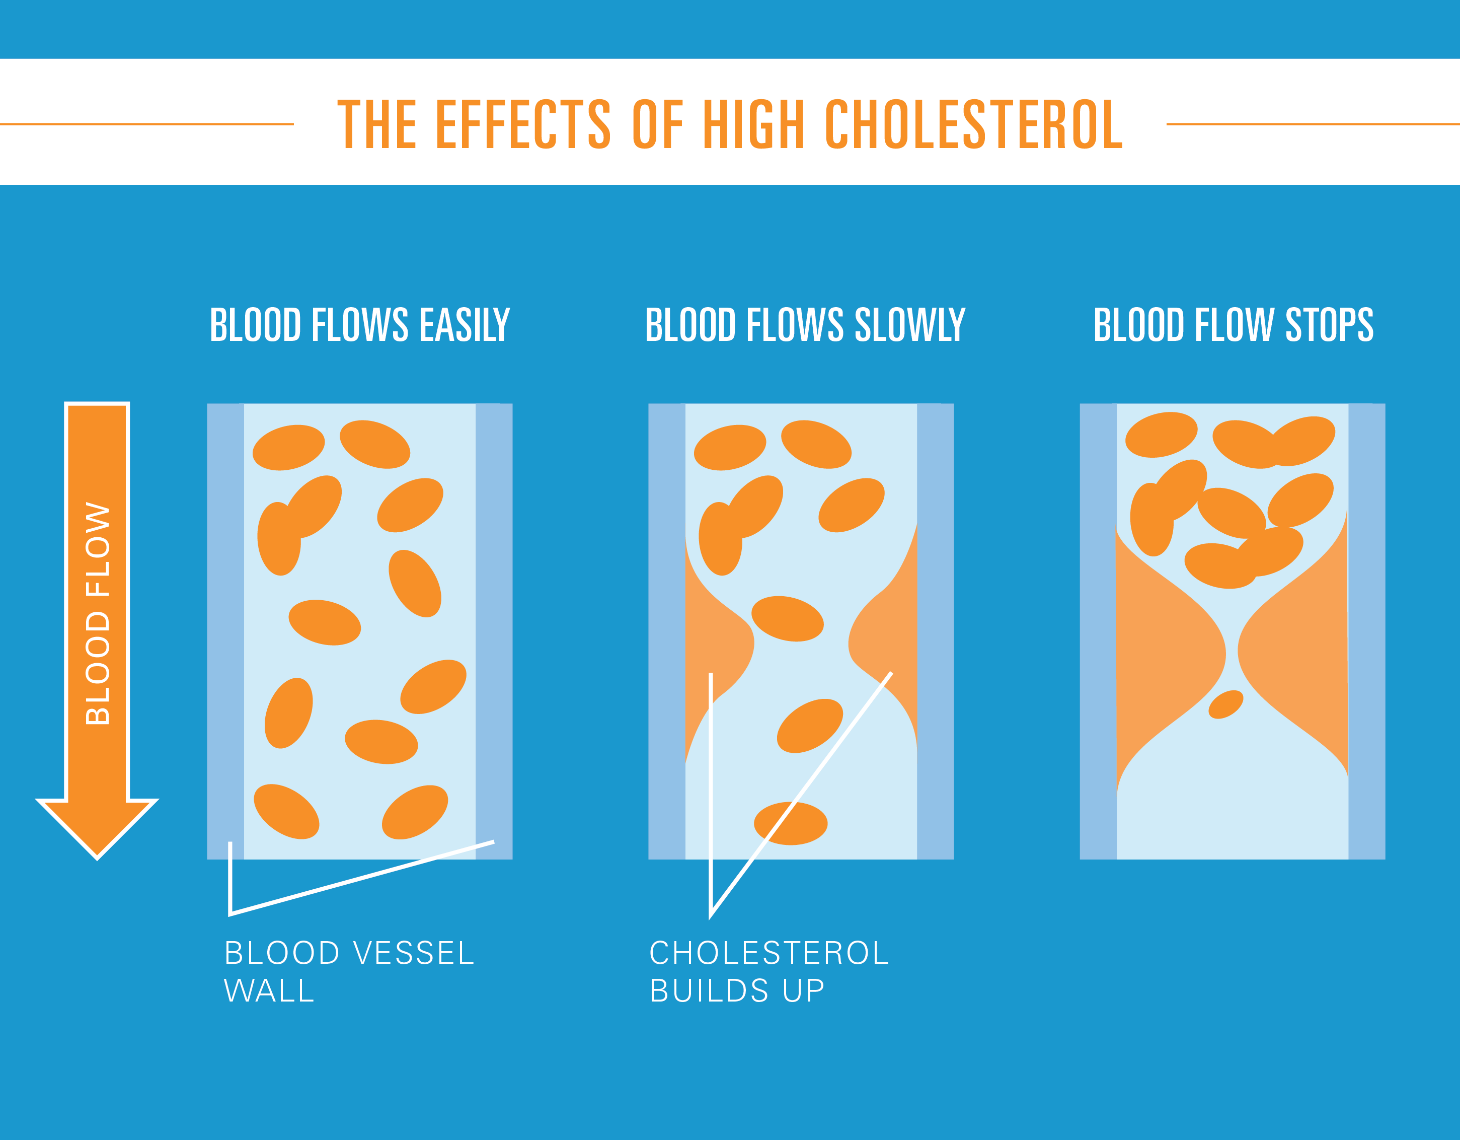 The Effects of High Cholesterol